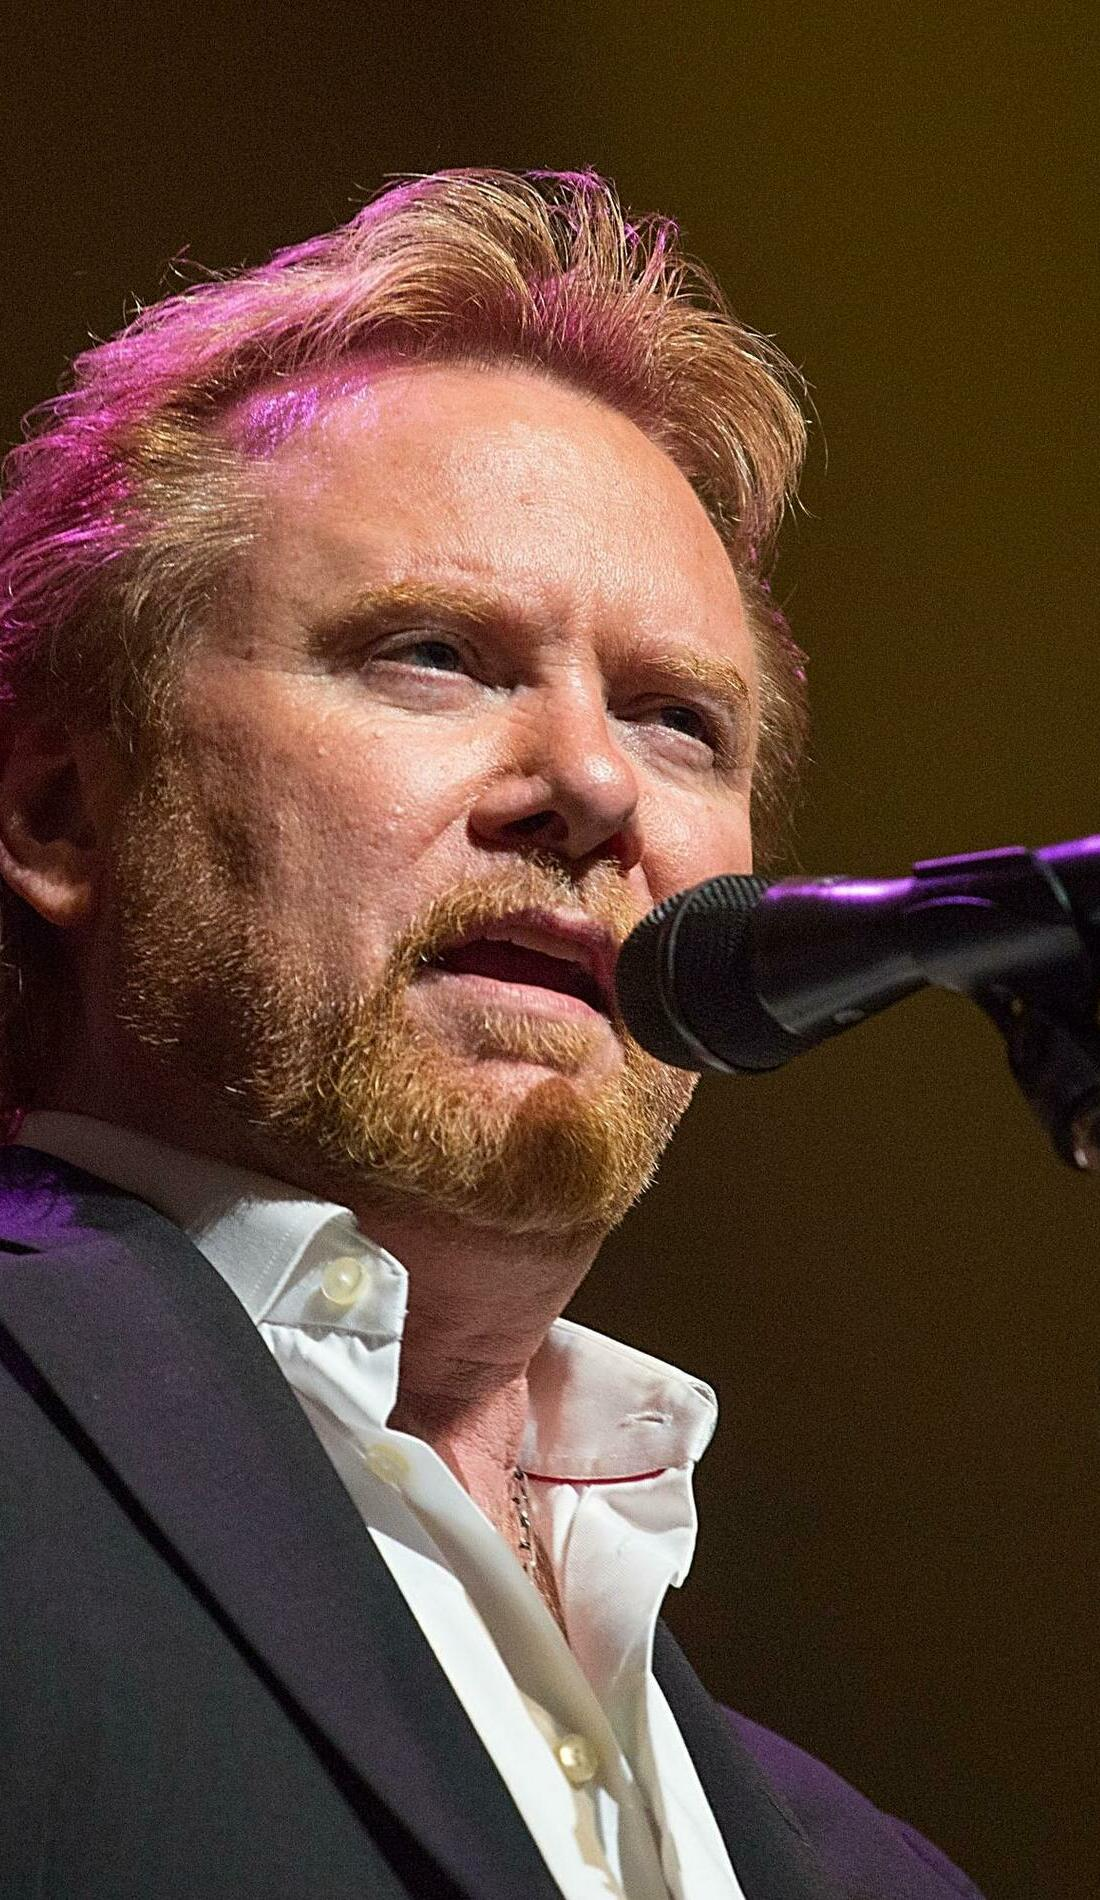 A Lee Roy Parnell live event